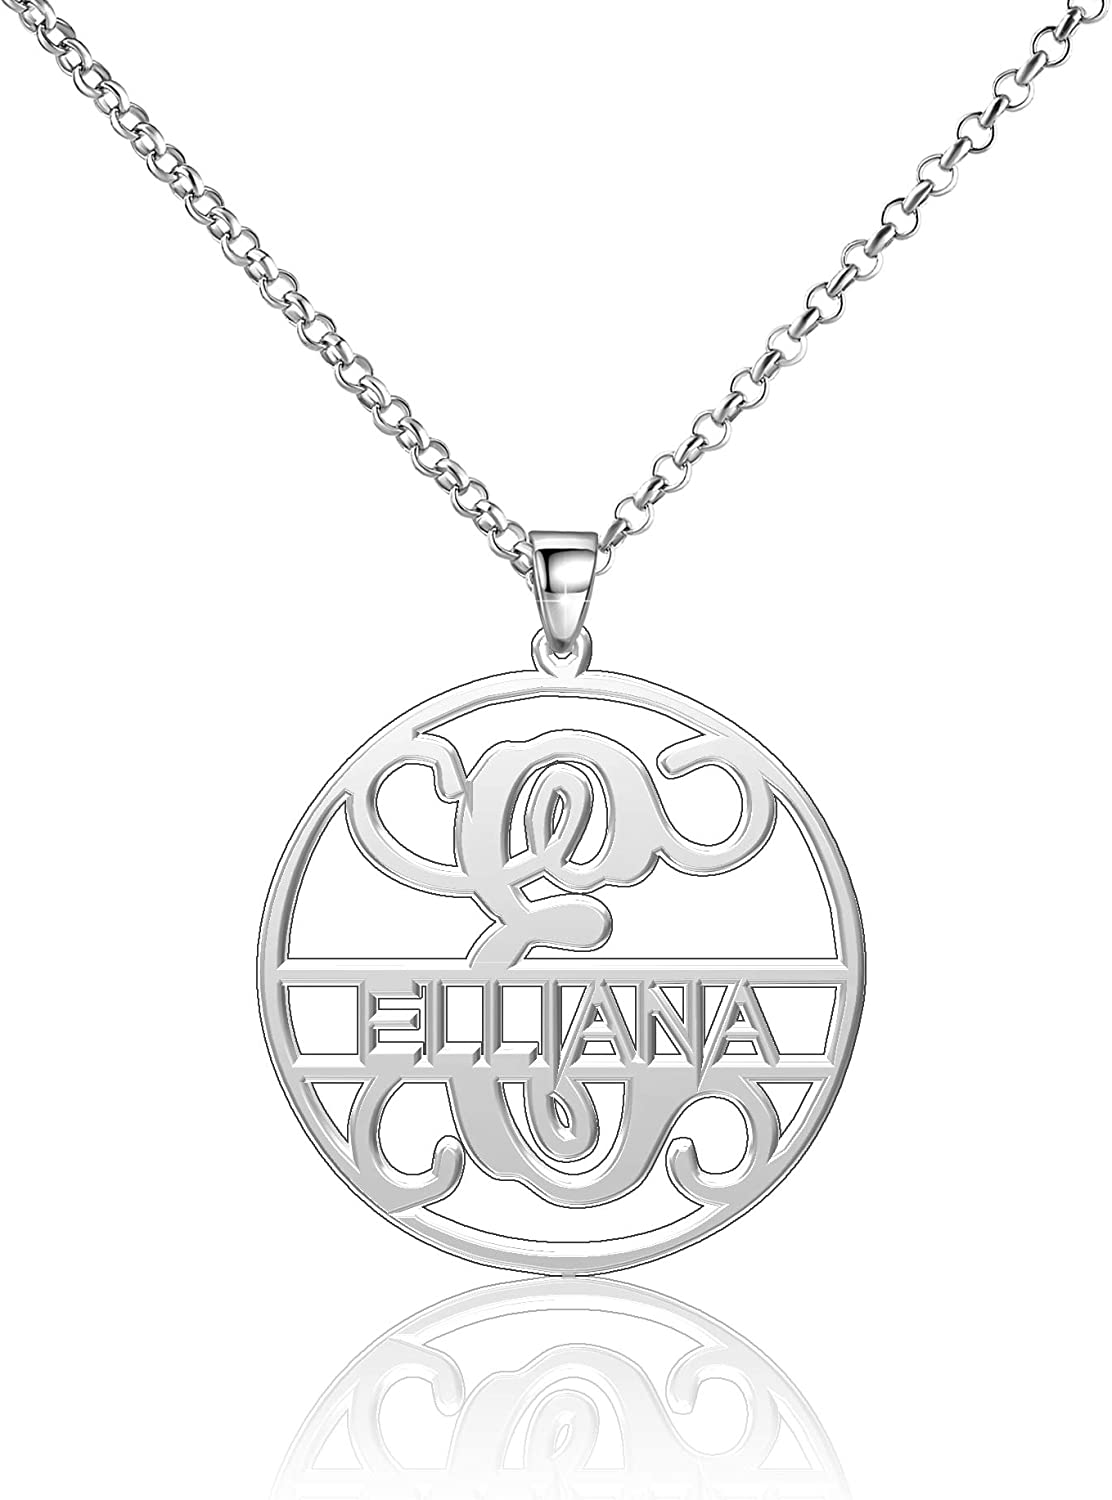 Moonlight Collections Elliana Necklace Personalized Necklace Sterling Silver